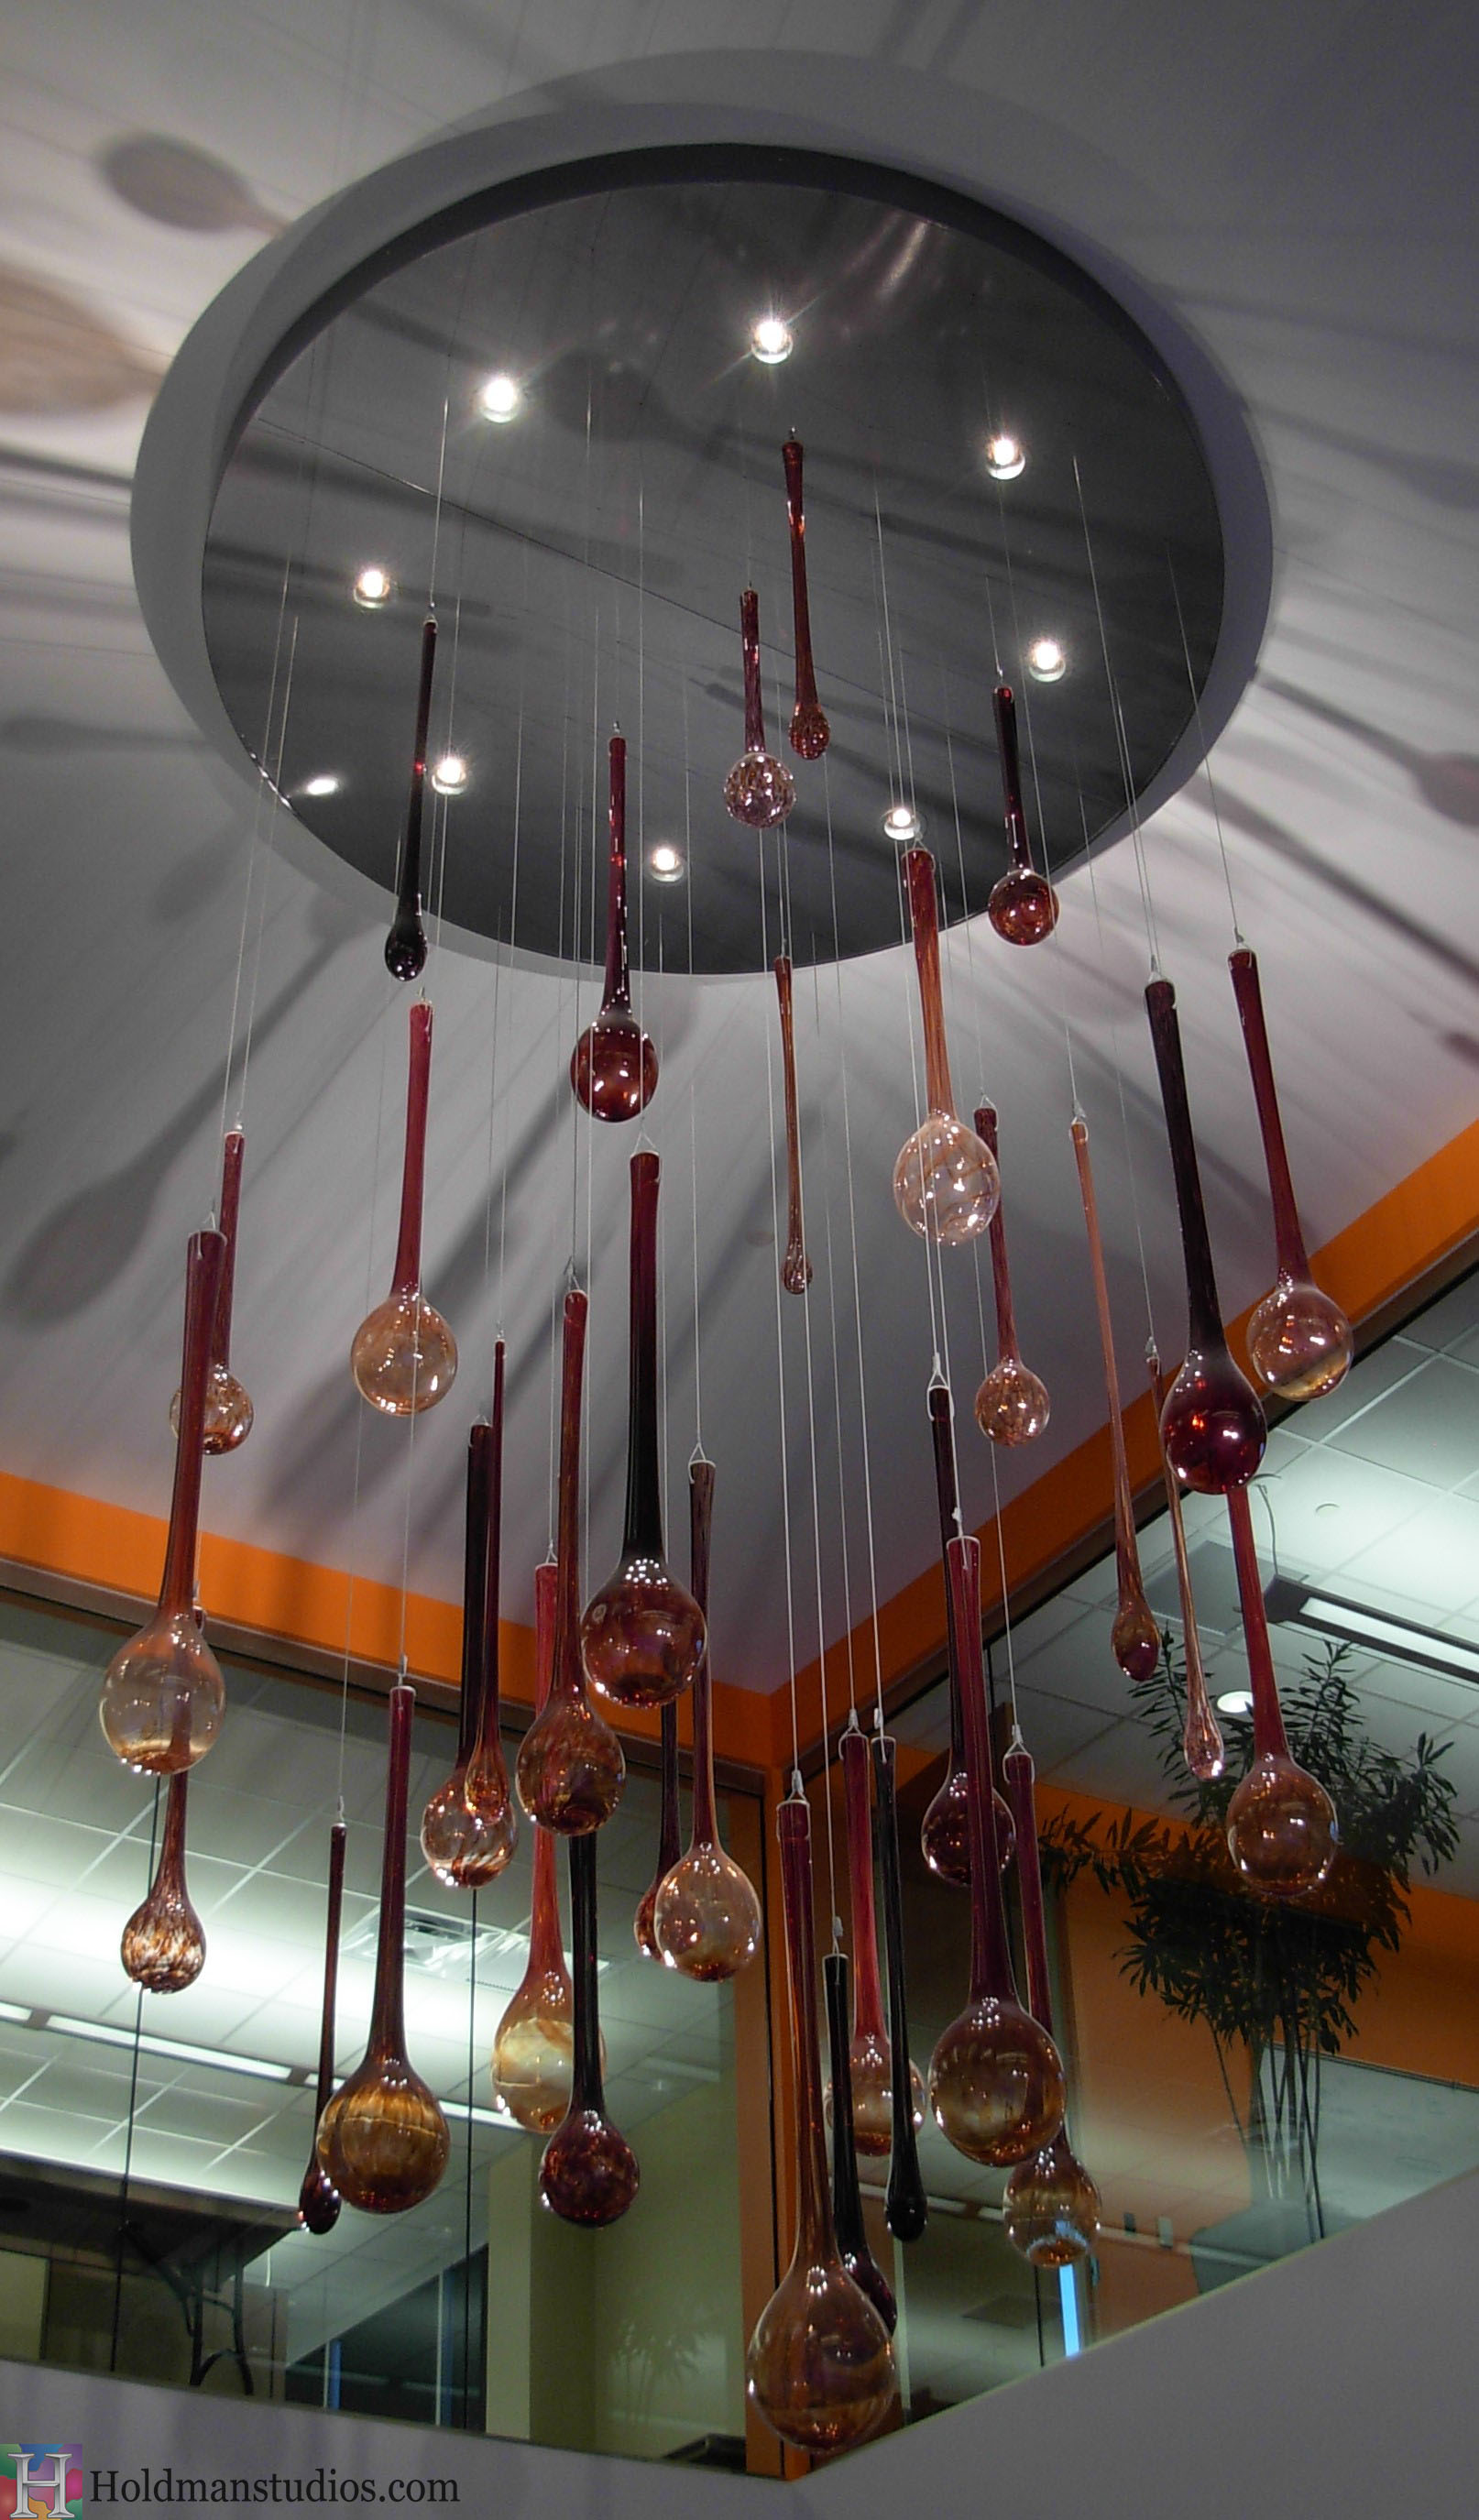 Xango_blown glass chandelier.jpg